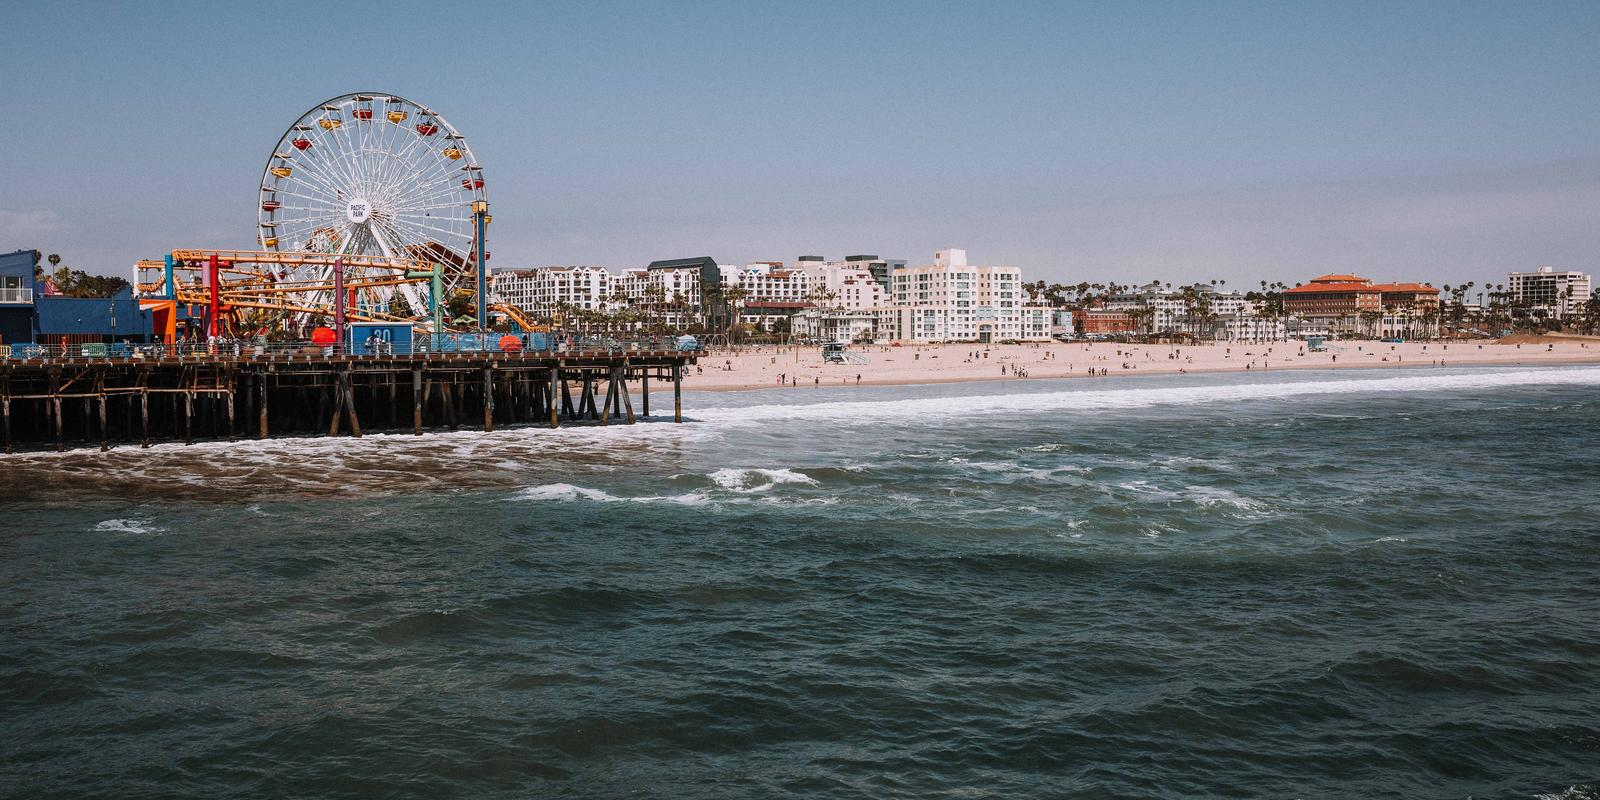 View from the ocean of rollercoaster on the Santa Monica Pier